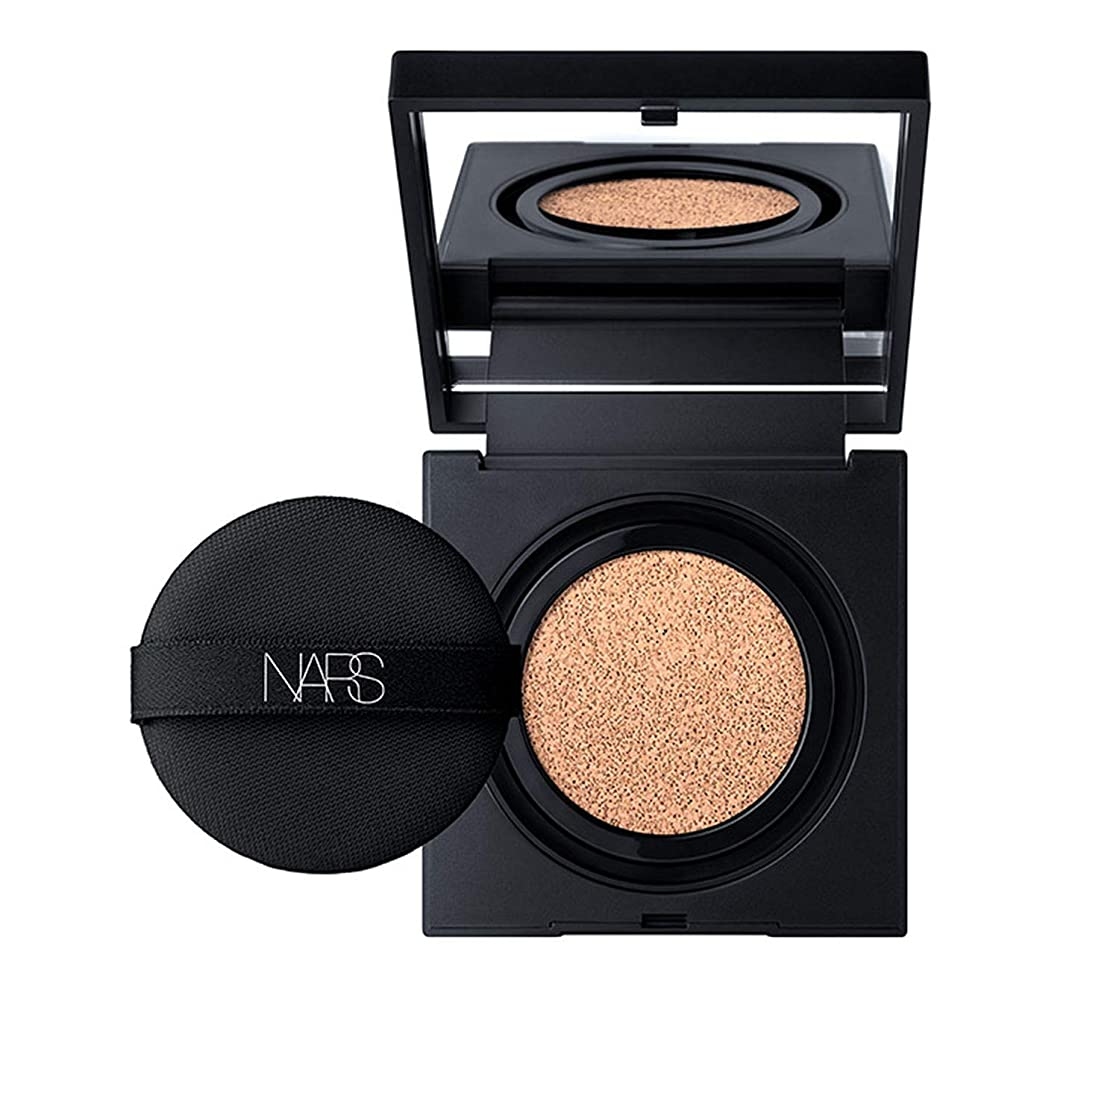 ベリに向かってエスカレートNars(ナーズ) Natural Radiant Longwear Cushion Foundation 12g # Mont Blanc